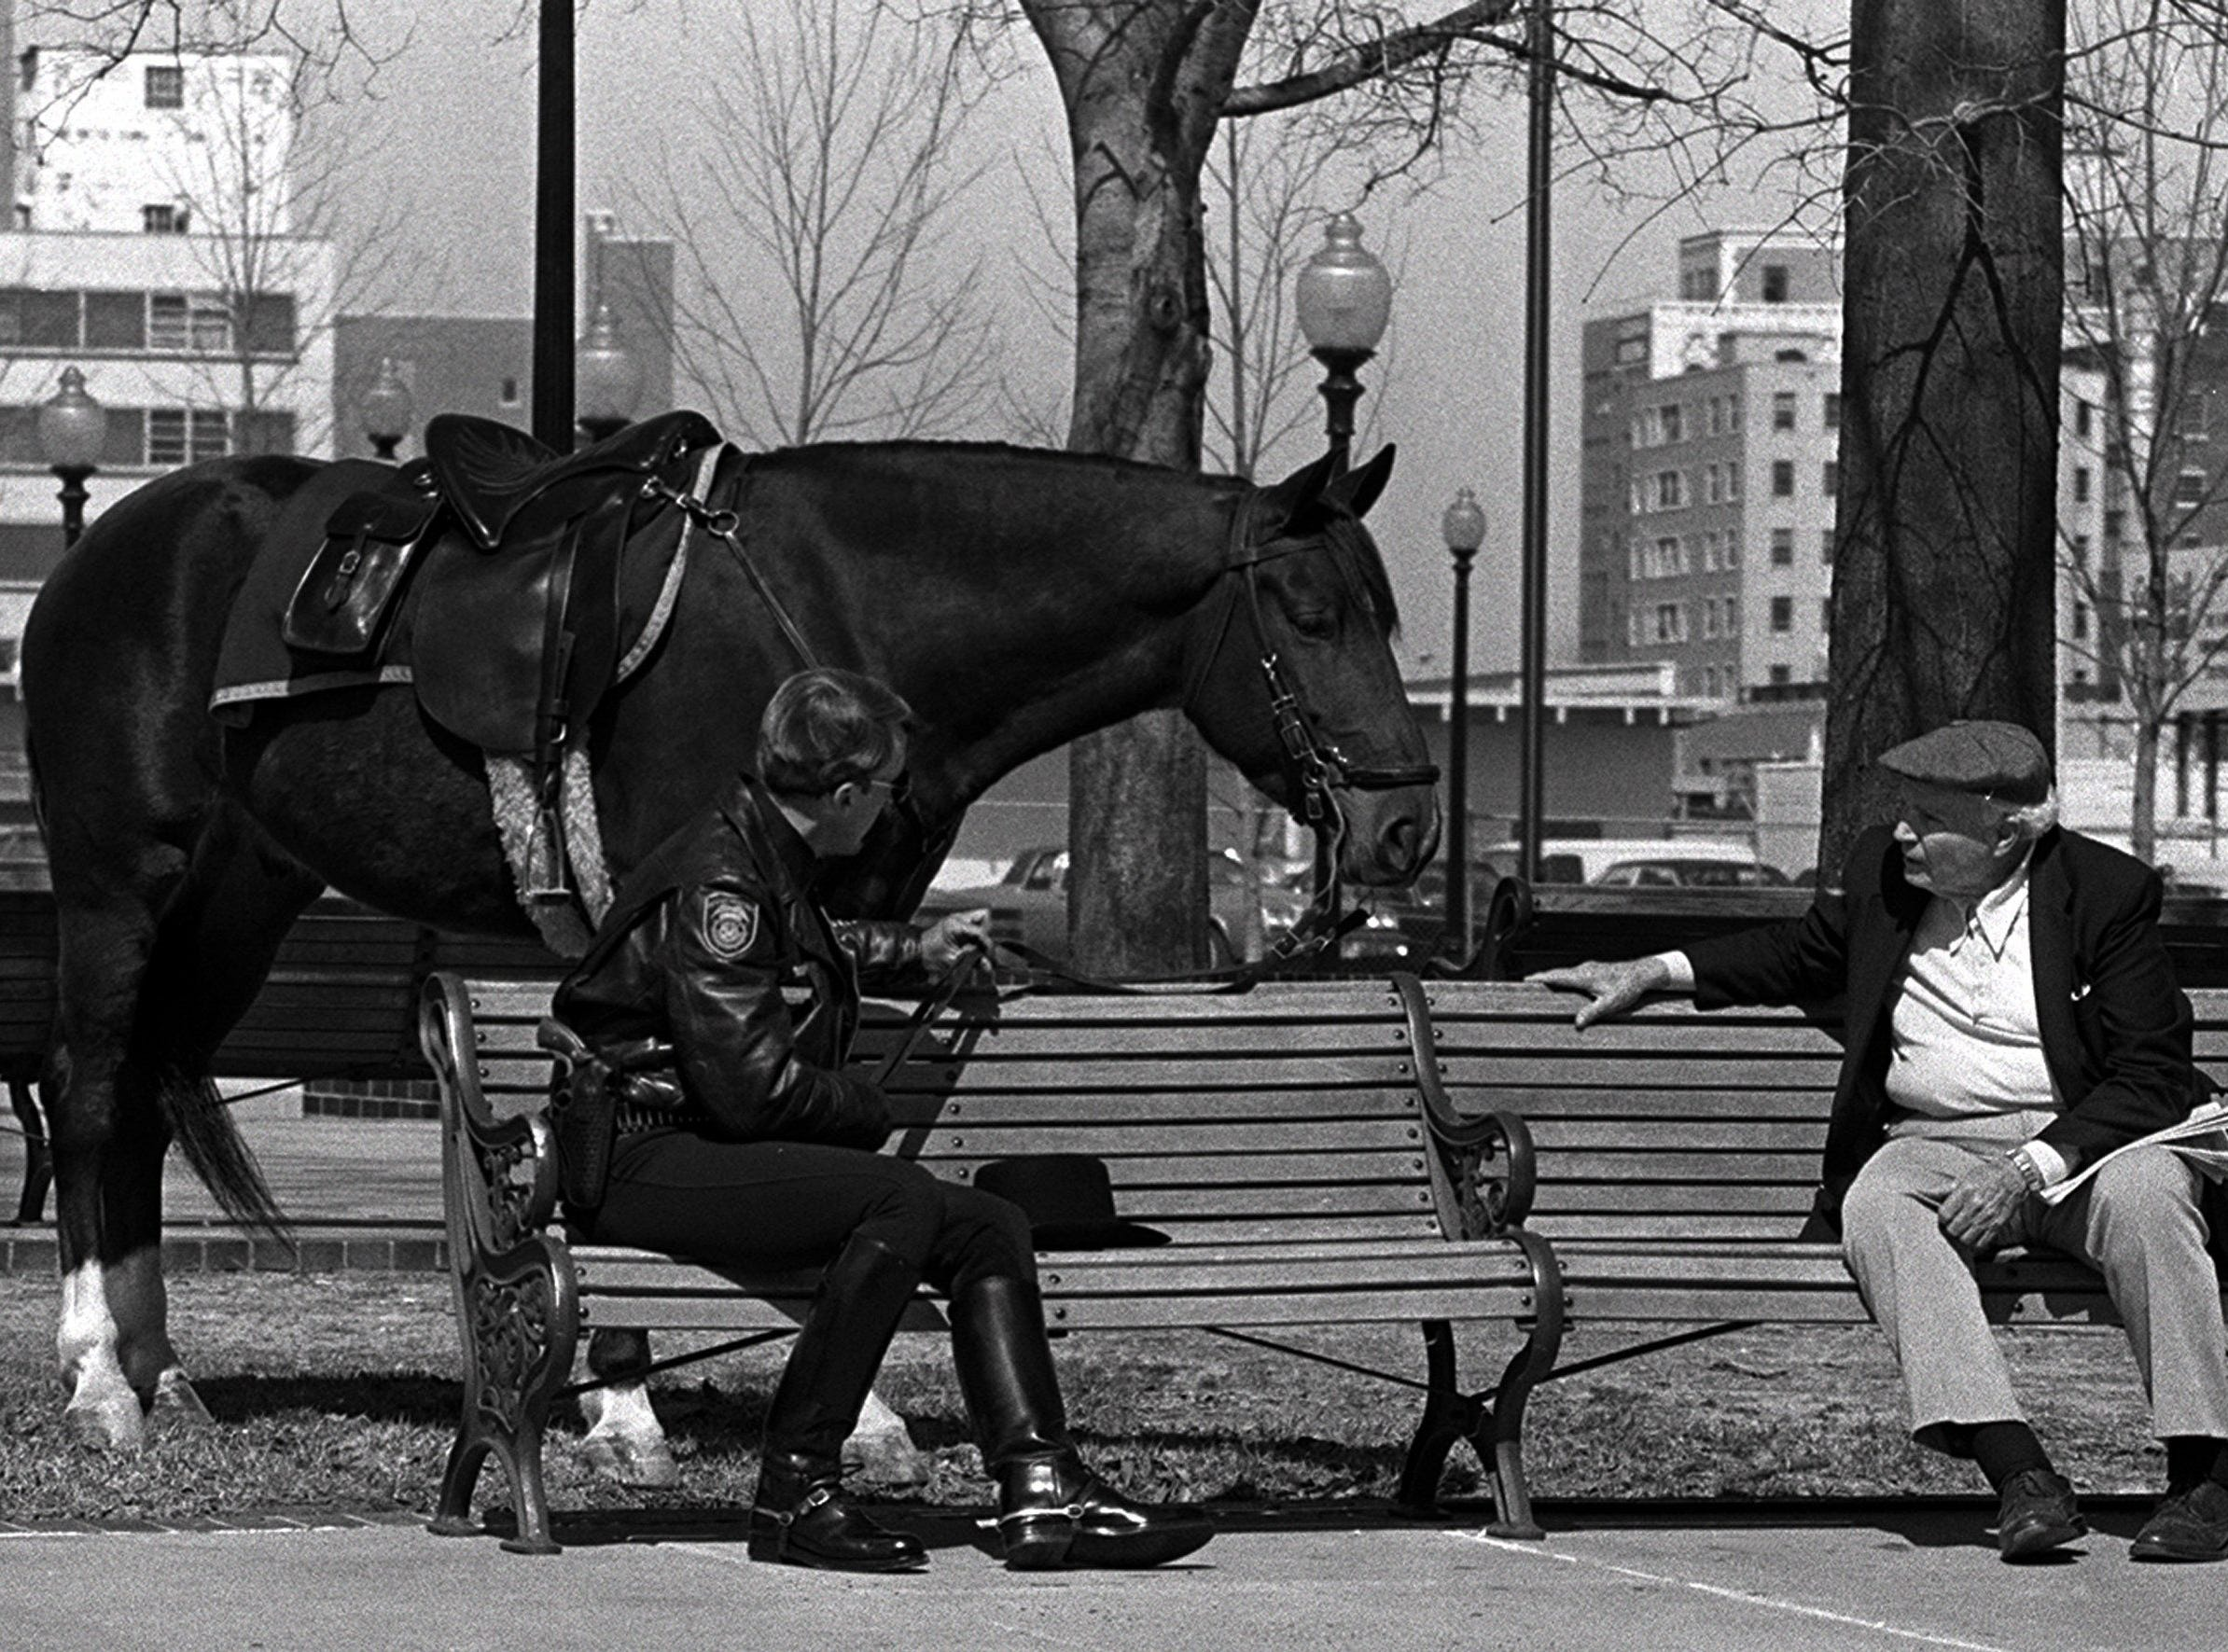 Mounted patrolman J.B. Dyer sits on a bench in W.C. Handy Park on 17 Mar 1985, talking to another Beale Street bench sitter, John Rea, as Dyer's horse, C.J. stands by, enjoying the weather too.